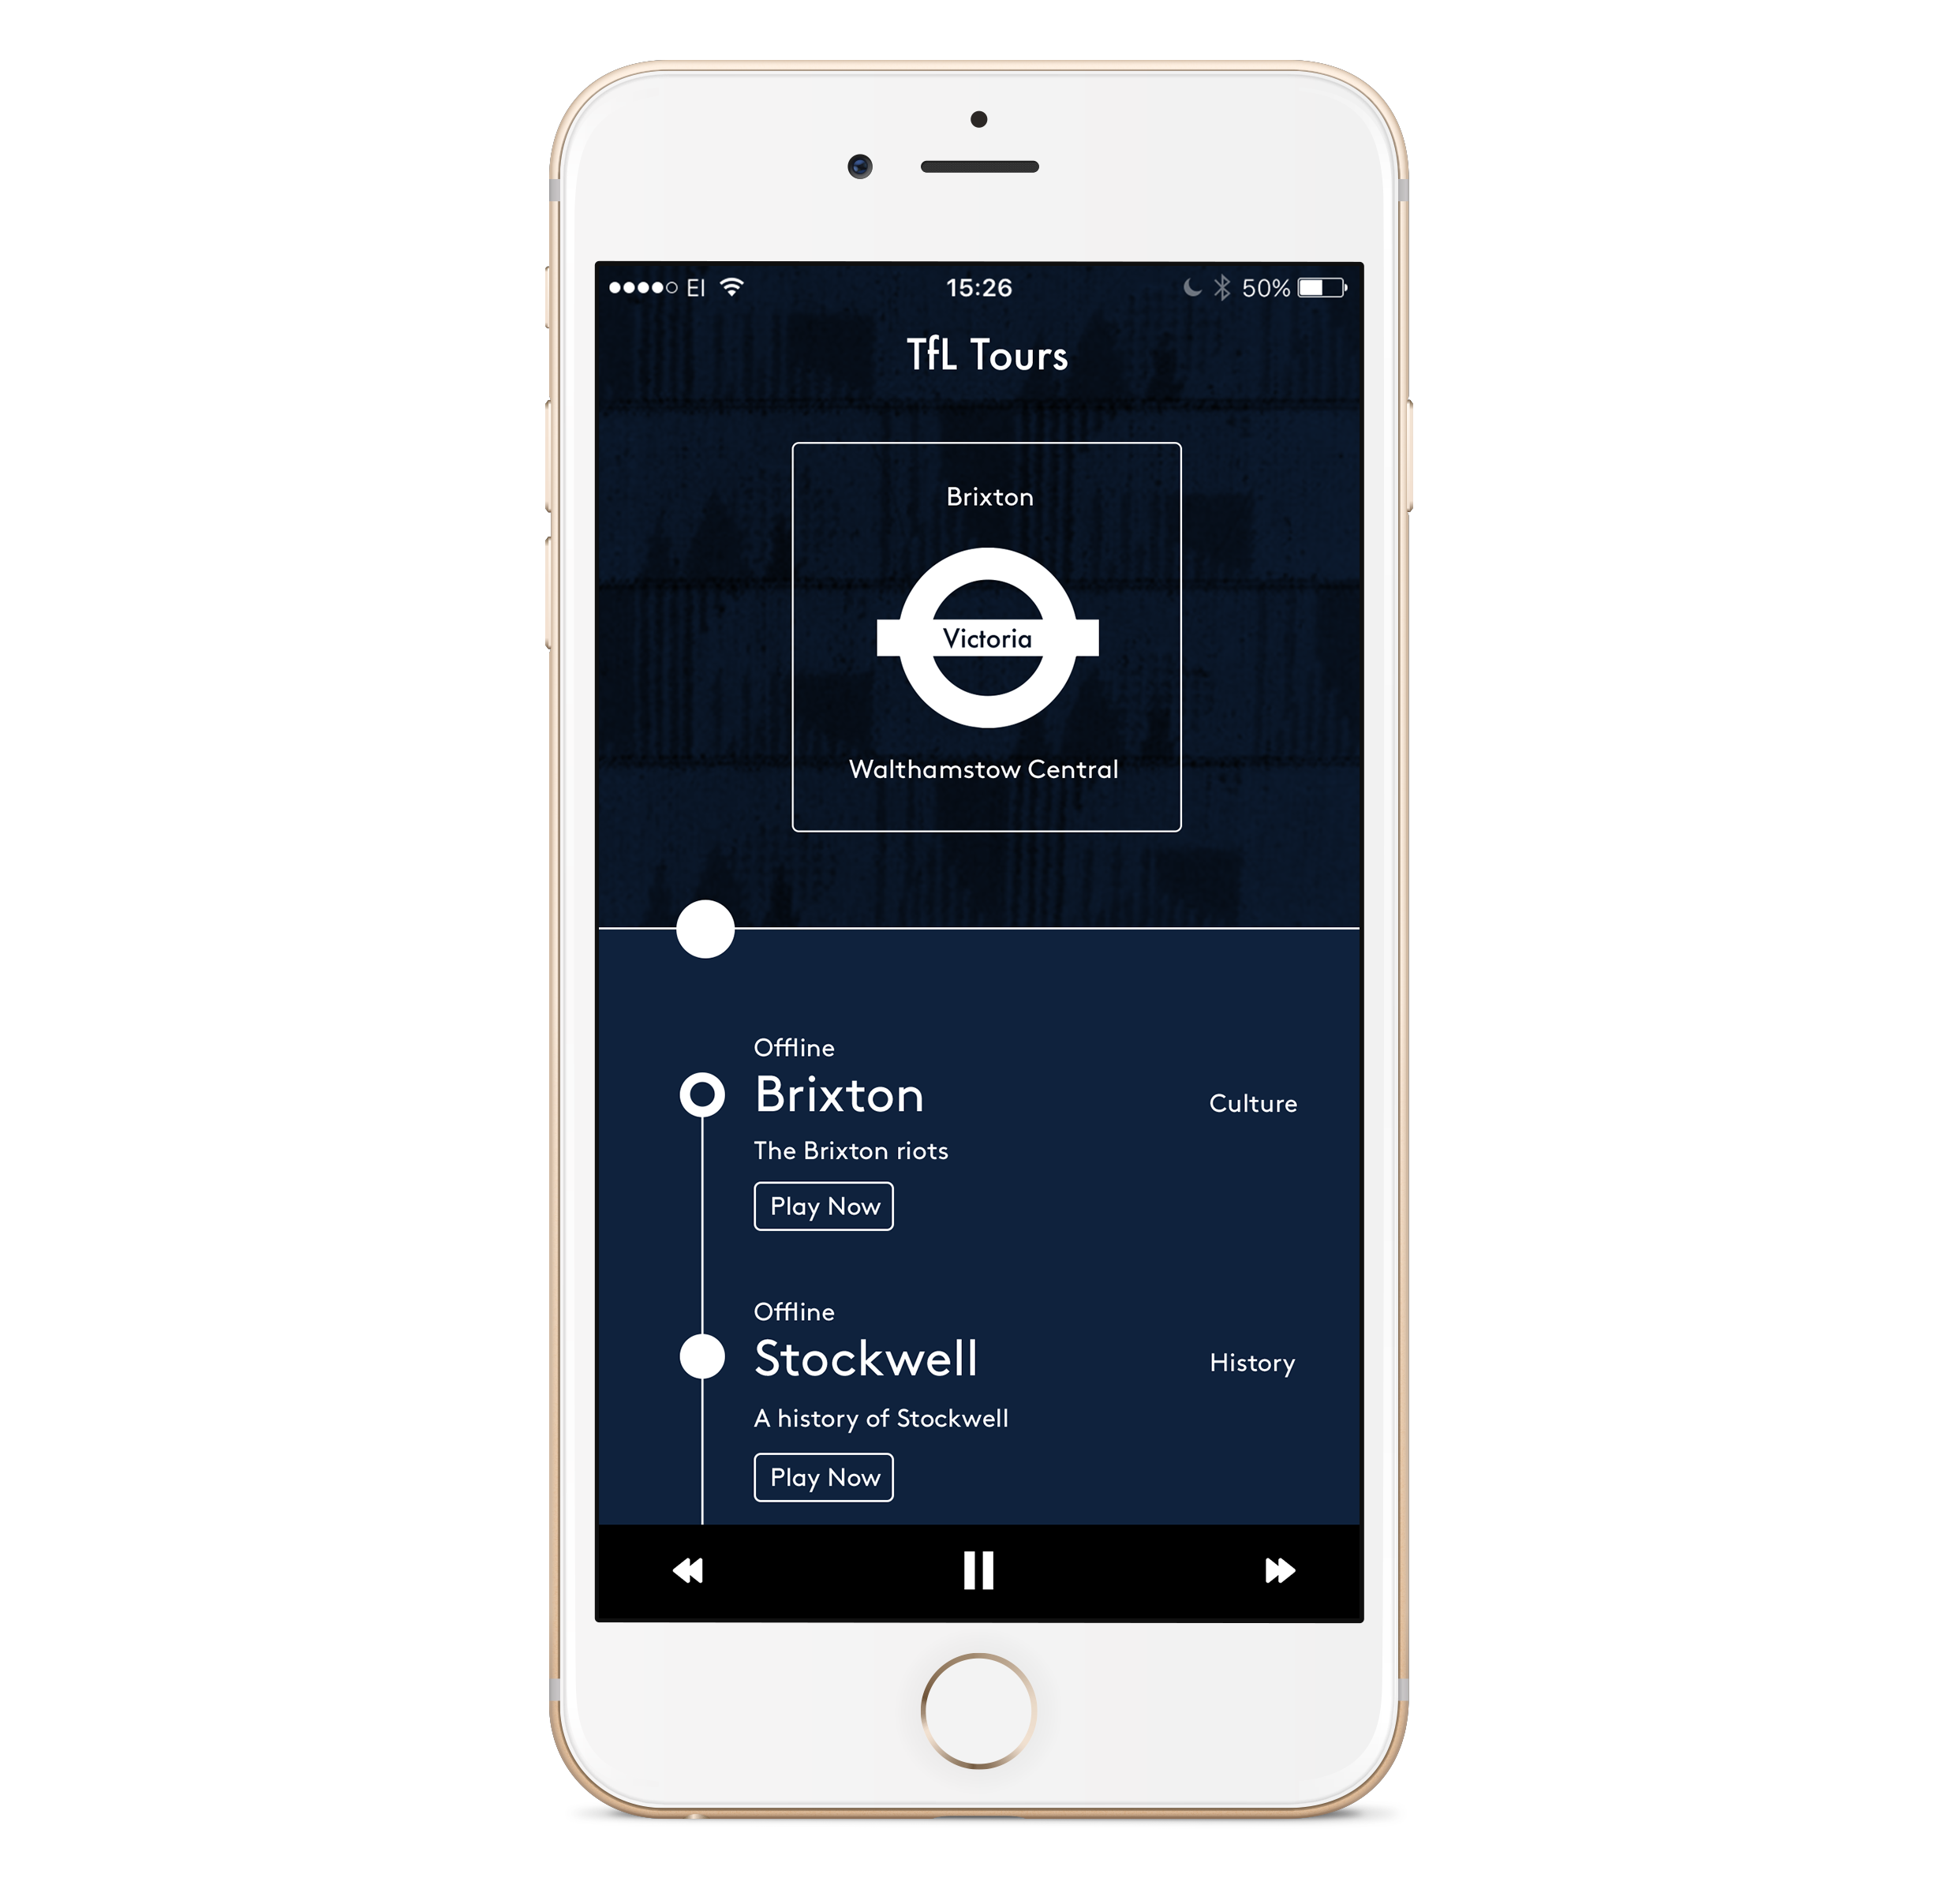 Underground - Learn about the London Underground with offline mode. Just select the tube line, download the stories in advance and listen to them even without signal.